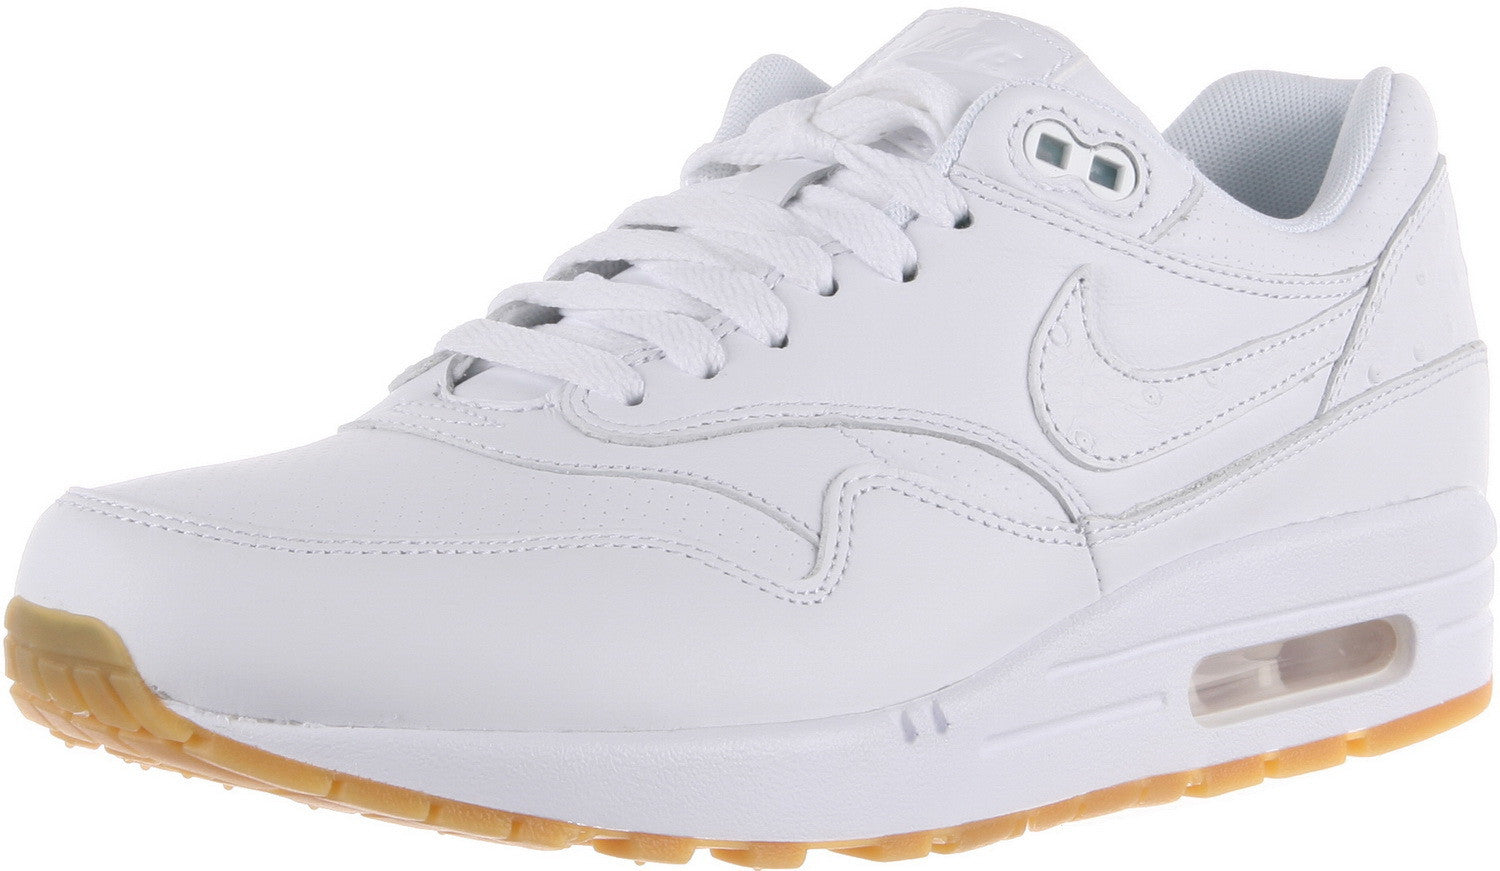 46e9a1729add NIKE AIR MAX 1 LEATHER PA Mens Sneakers 705007-111 – Premium Laces NY